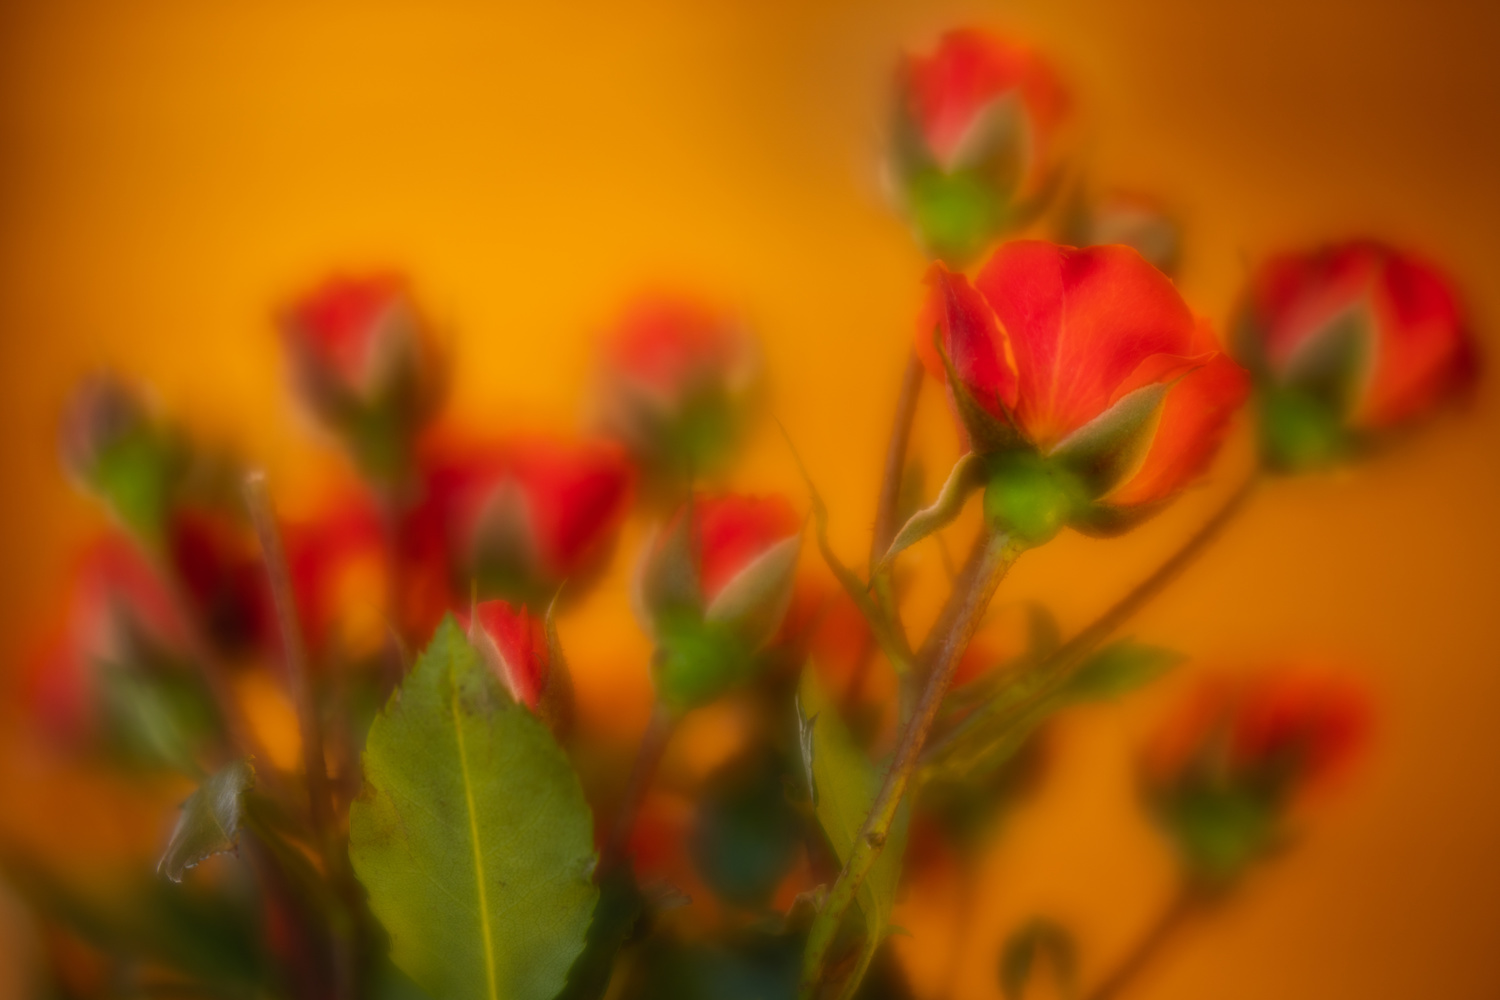 Playing around with lensbaby by Skyler Ewing